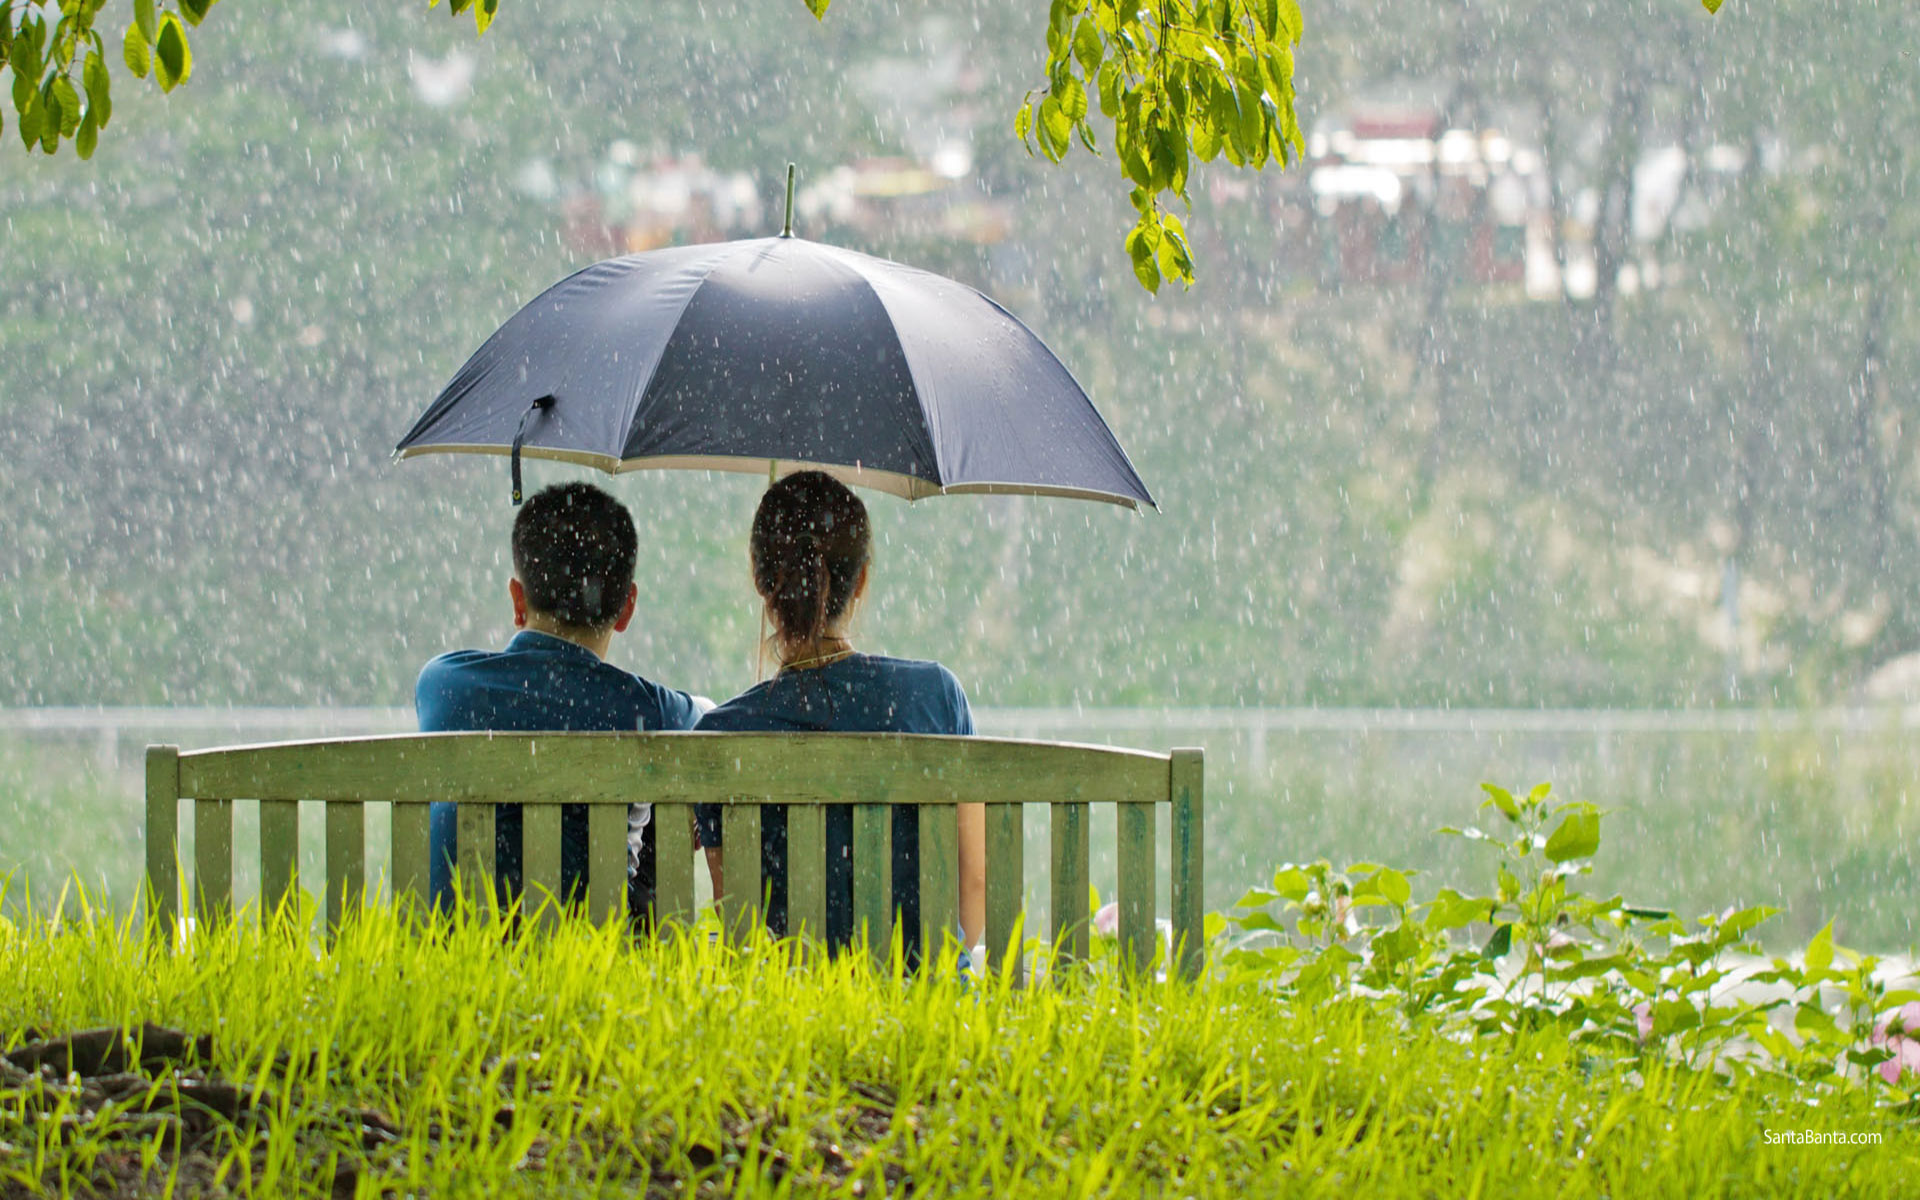 Romantic-couple-sitting-in-park-while-raining